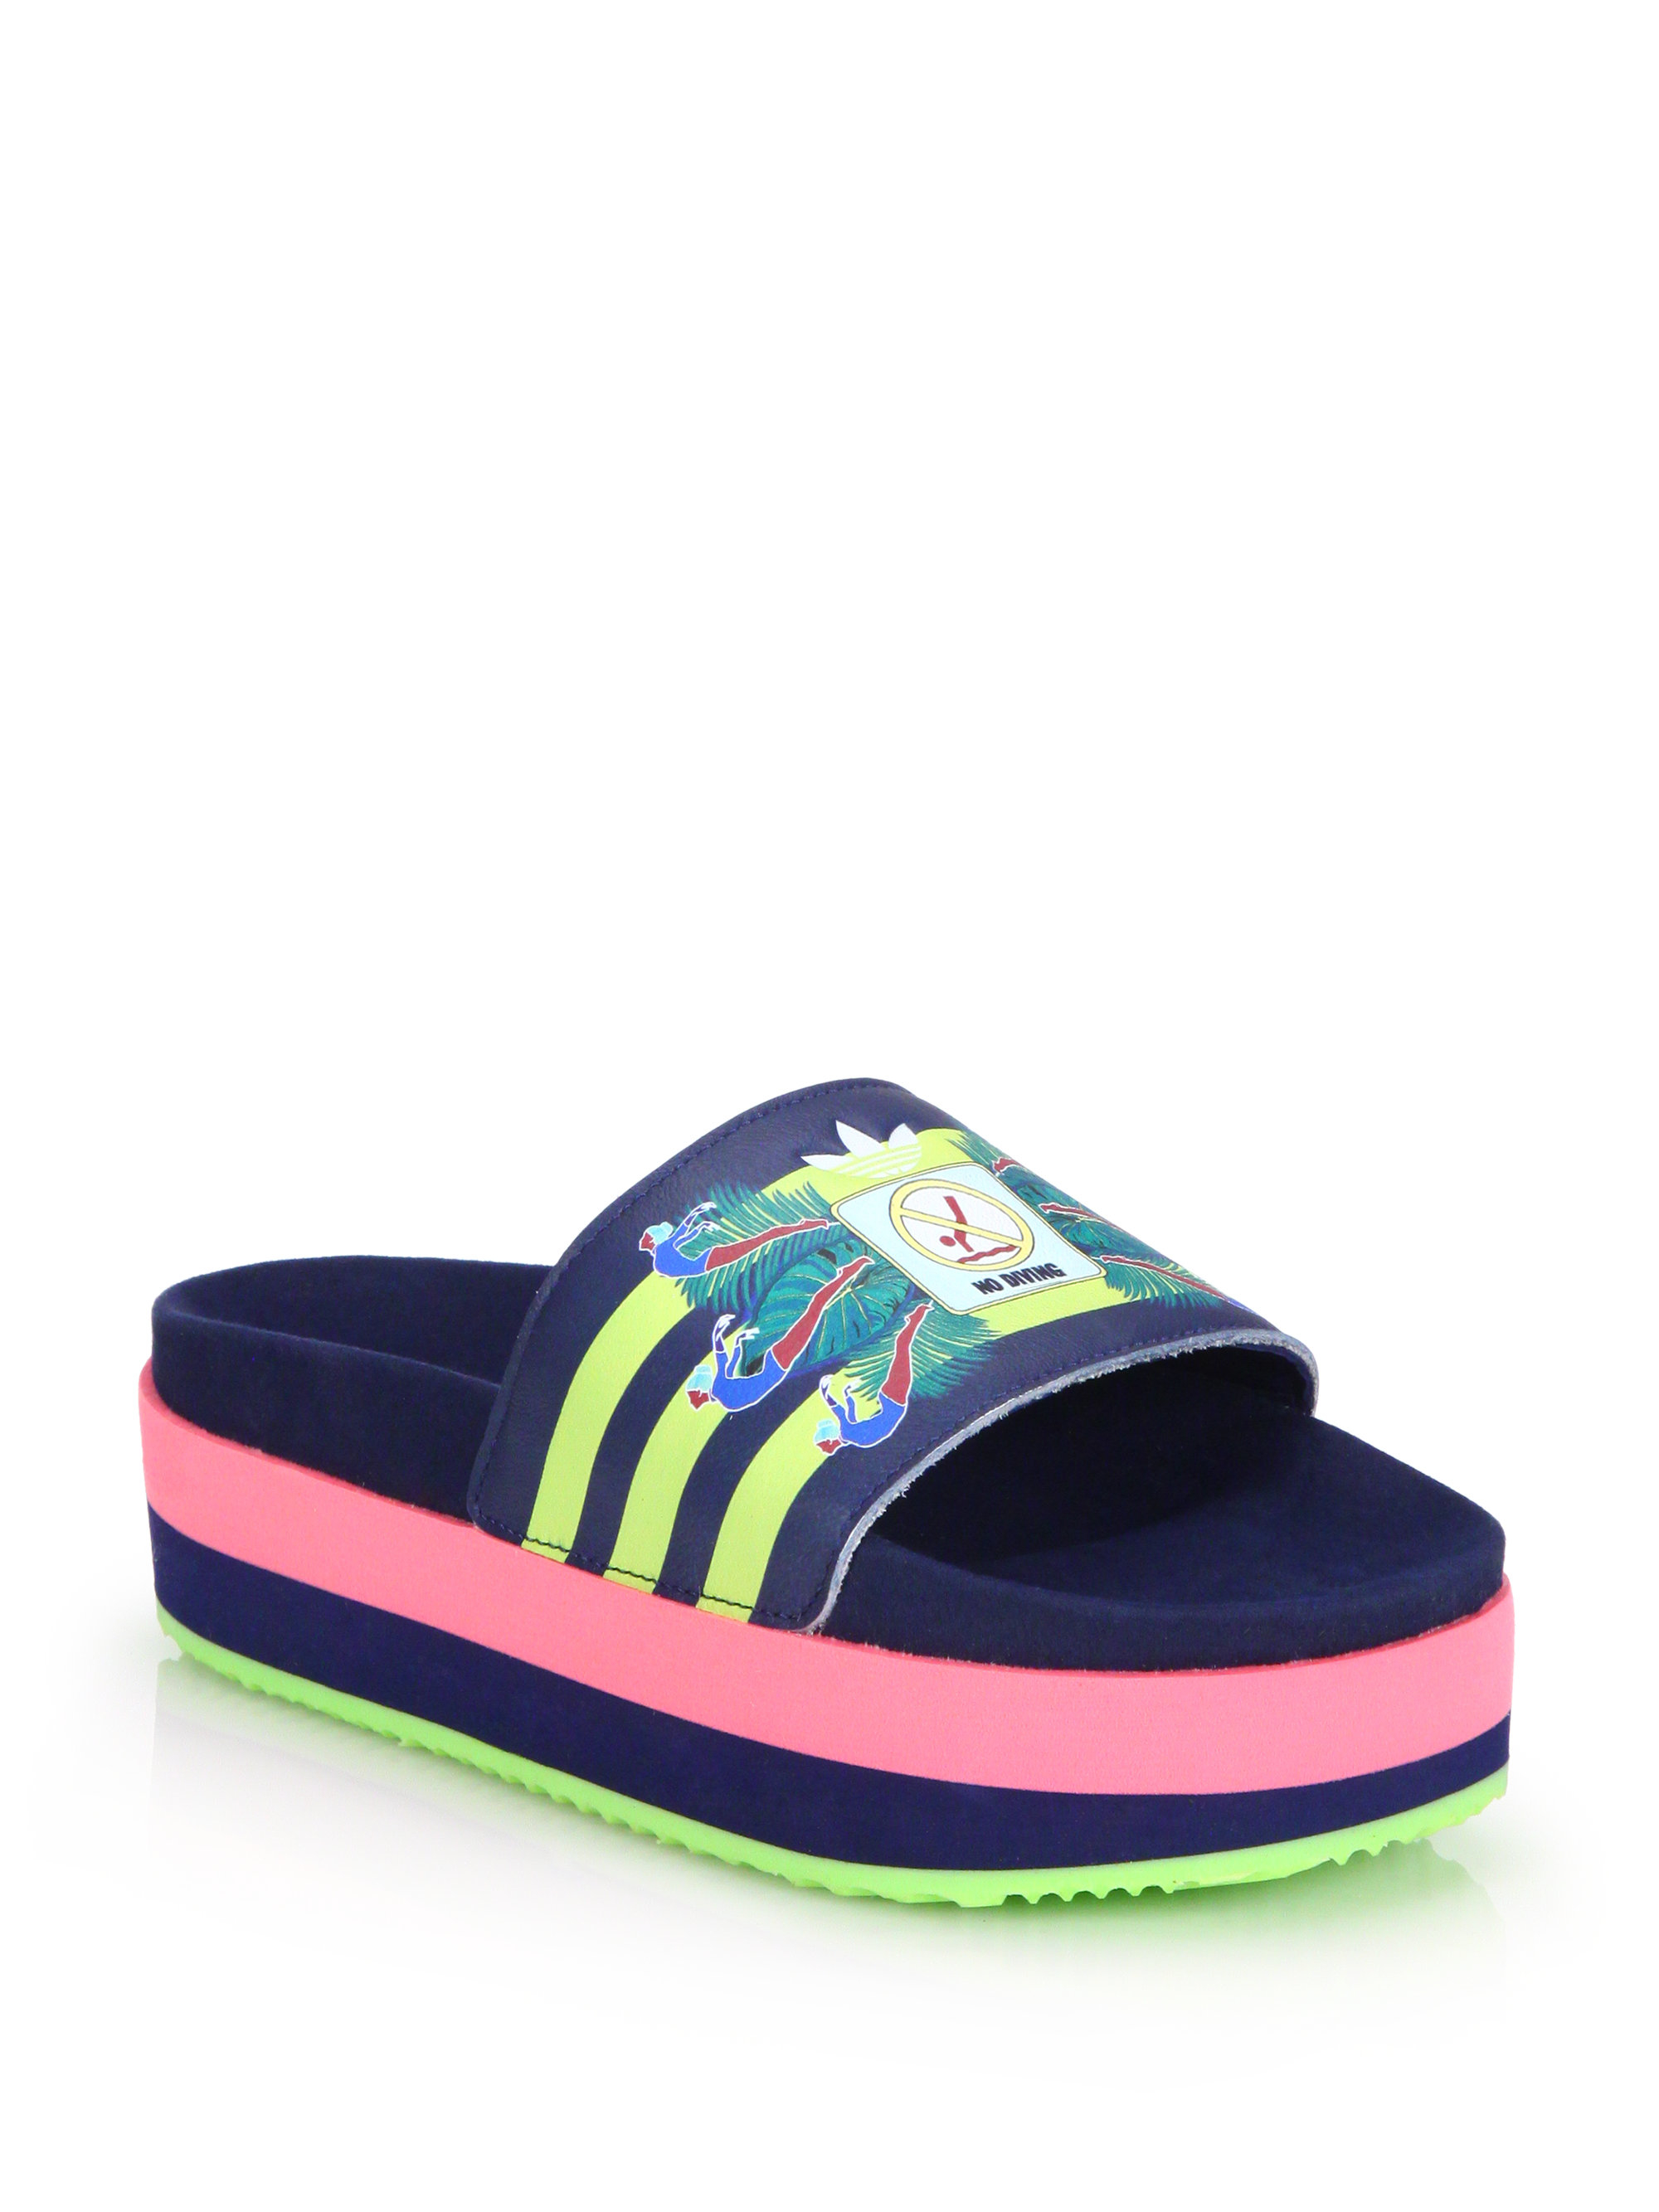 Lyst Adidas Originals No Diving Platform Slide Sandals